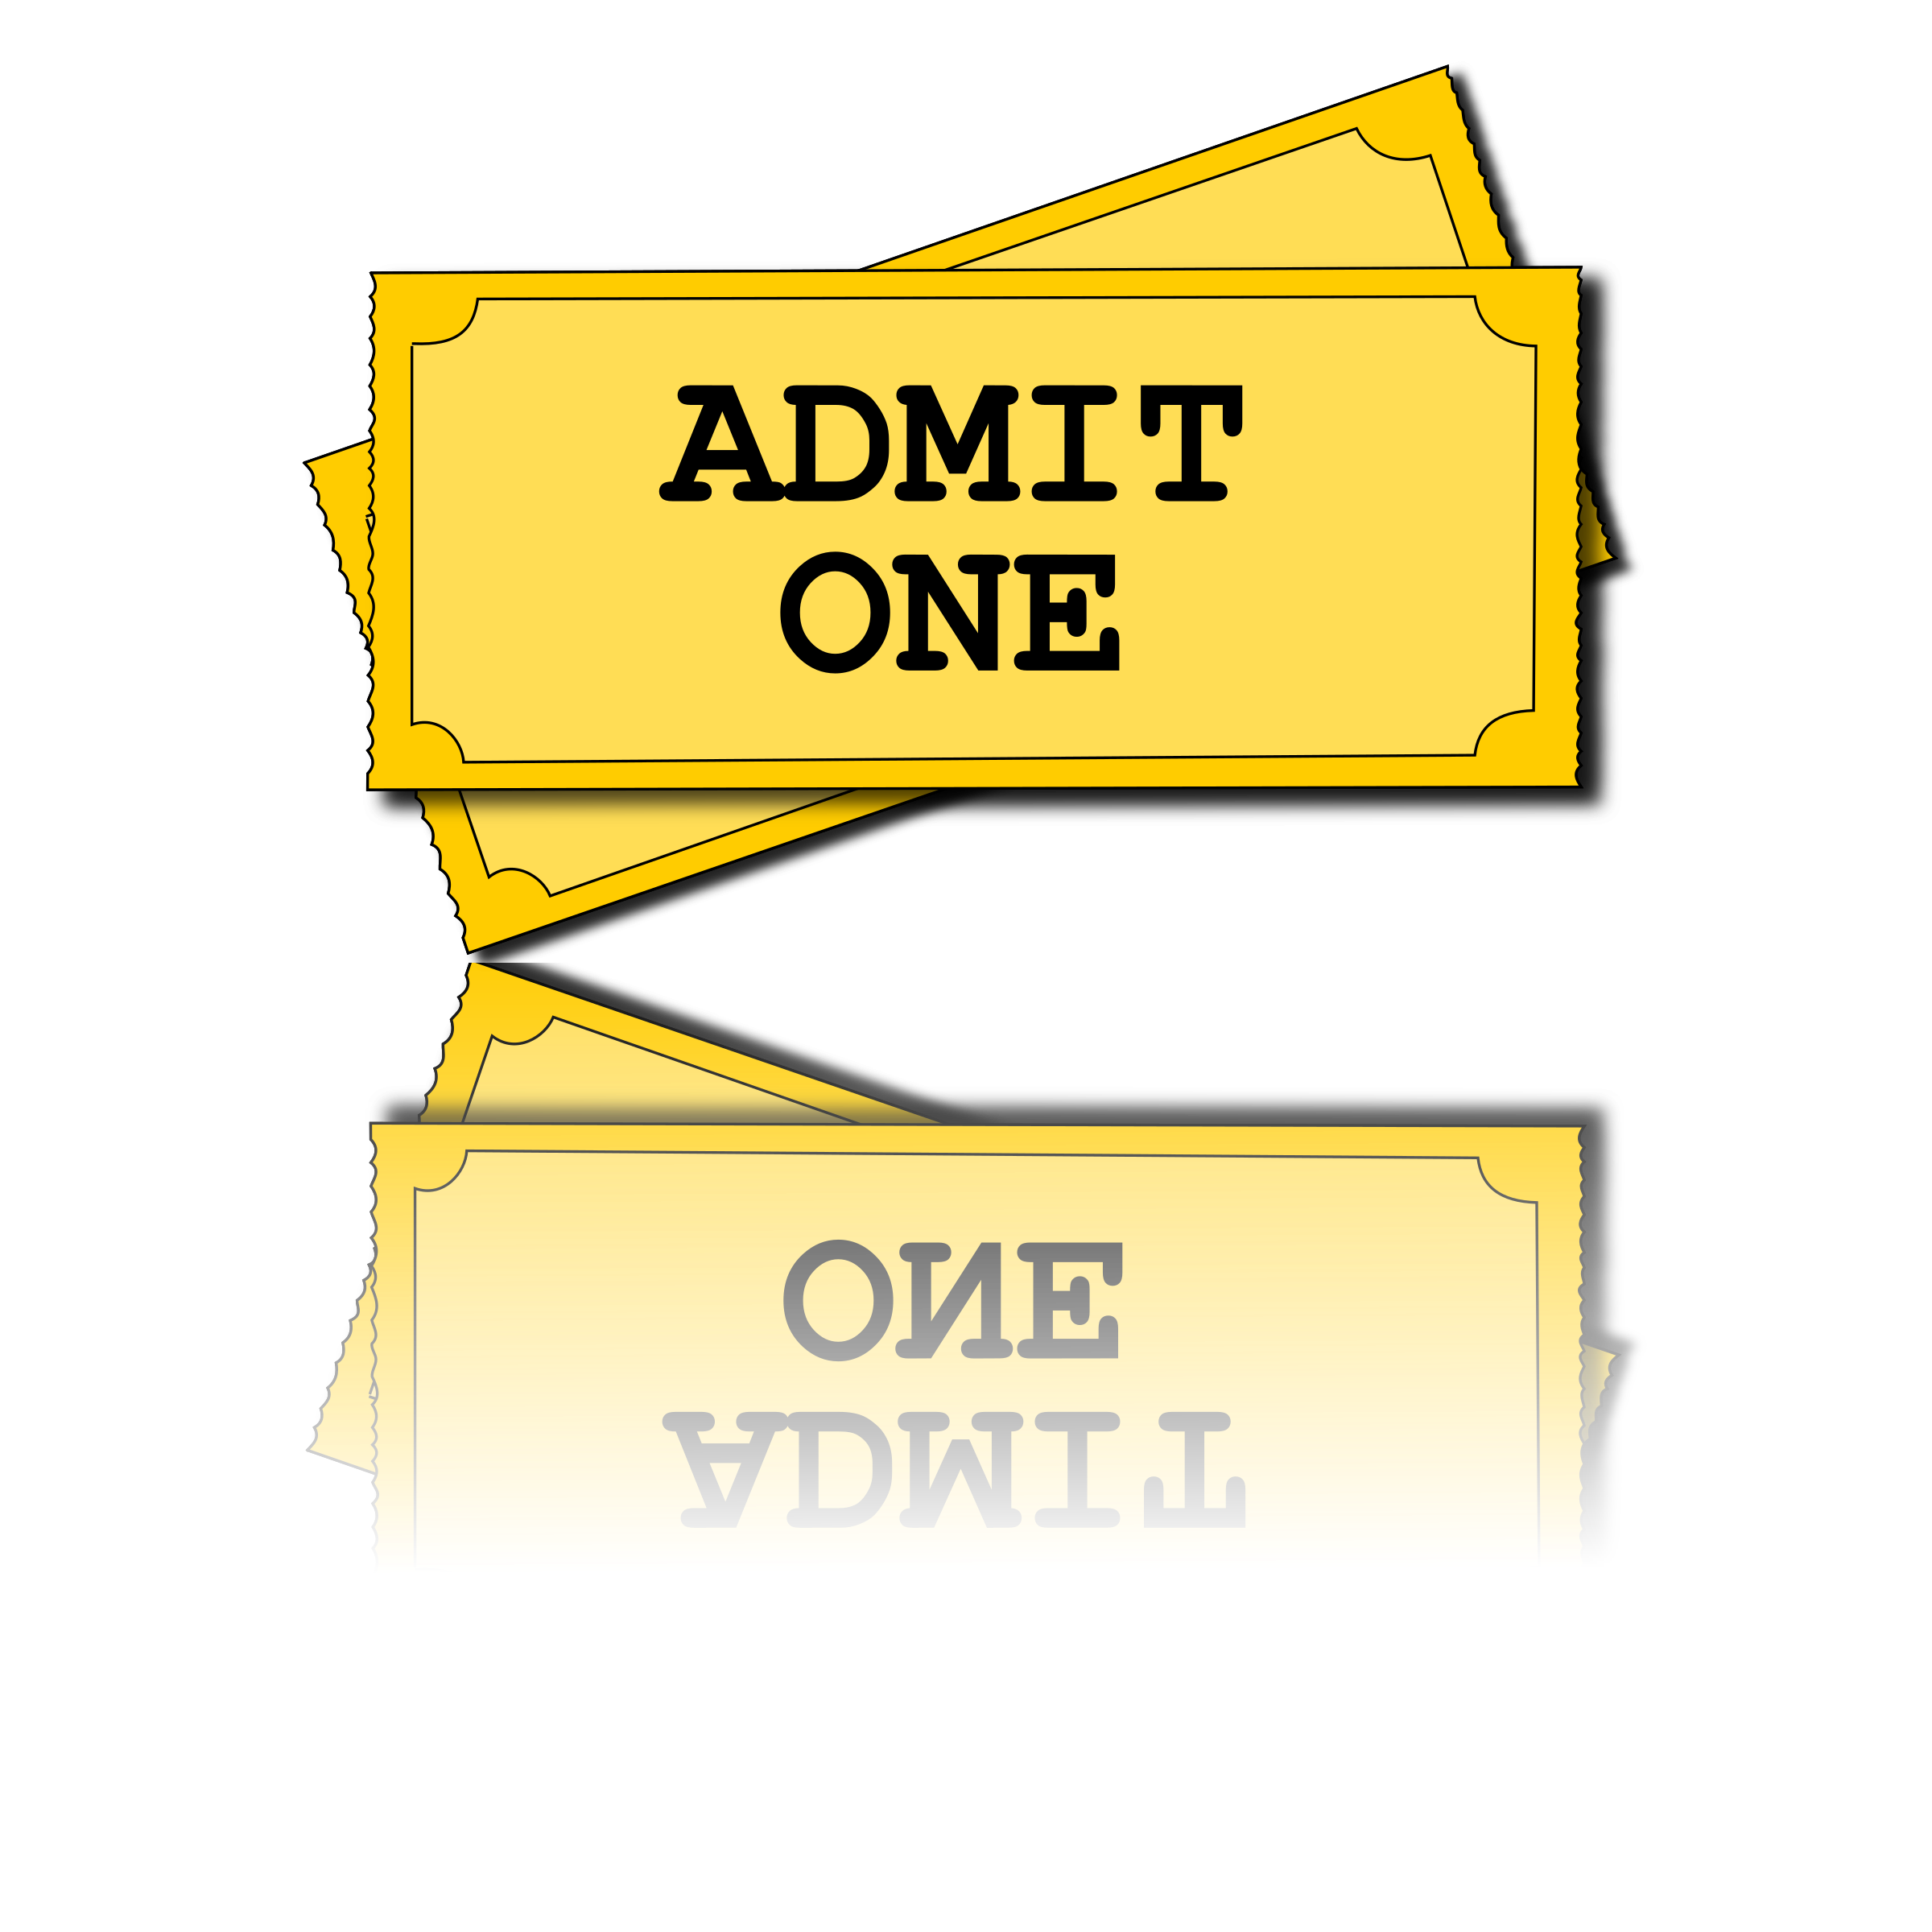 clipart movie tickets rh openclipart org clipart ticket cinéma movie ticket clipart black and white